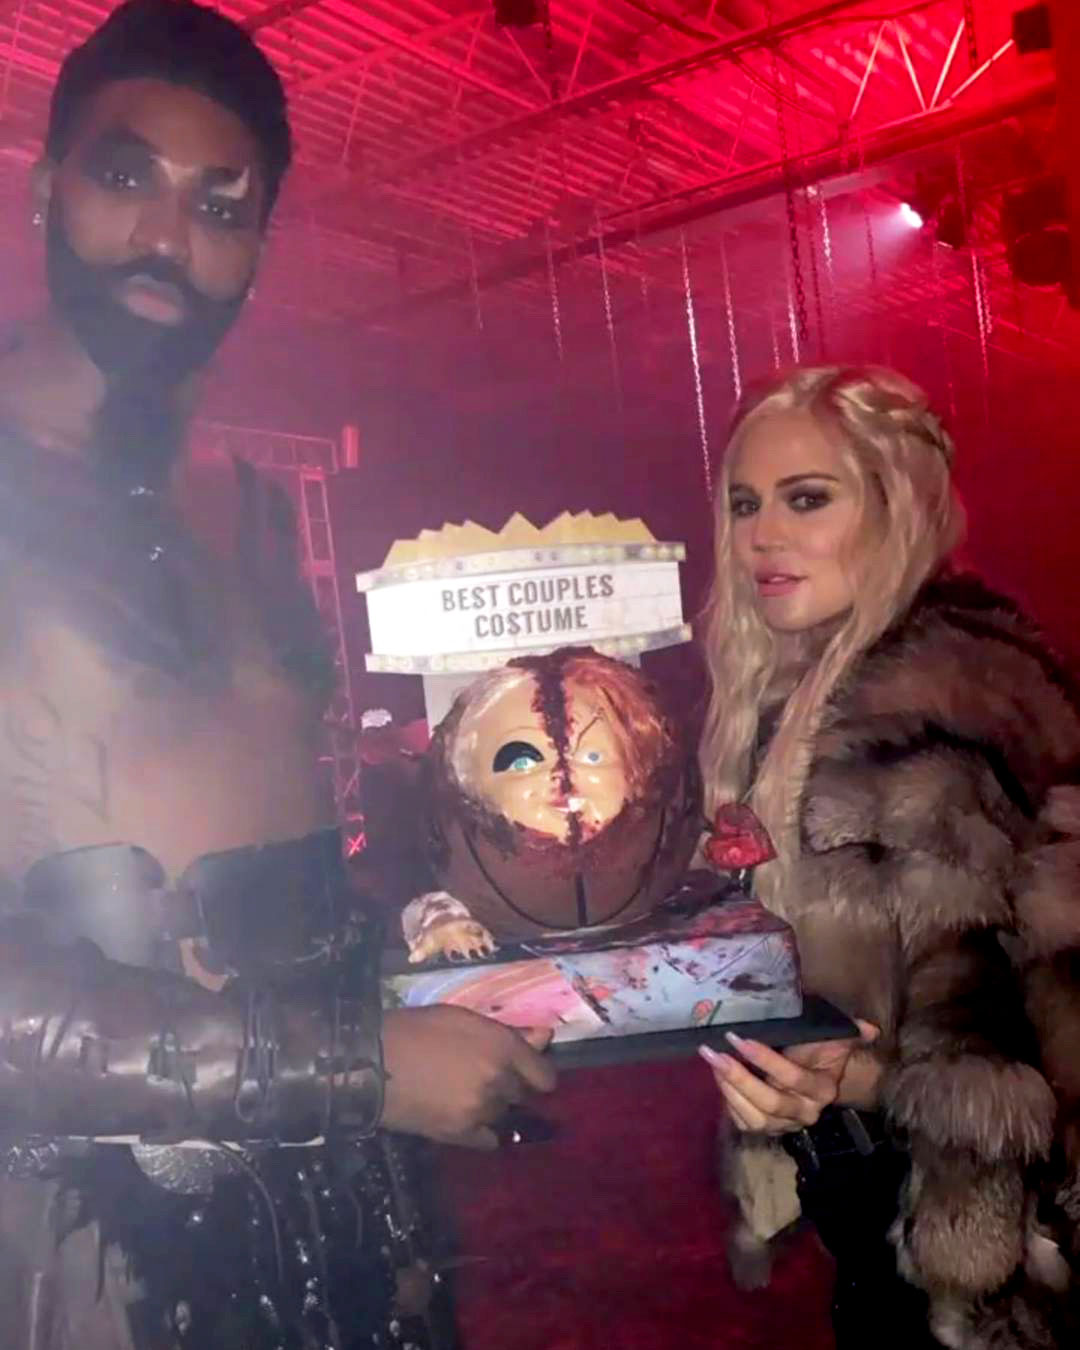 """Tristan Khloe Flirt Social Media - In November 2018, after saying he was """"#blessed"""" to be spending Thanksgiving with Kardashian and True, the Cleveland Cavaliers player referred to his girlfriend as """"this fine ass chef."""""""